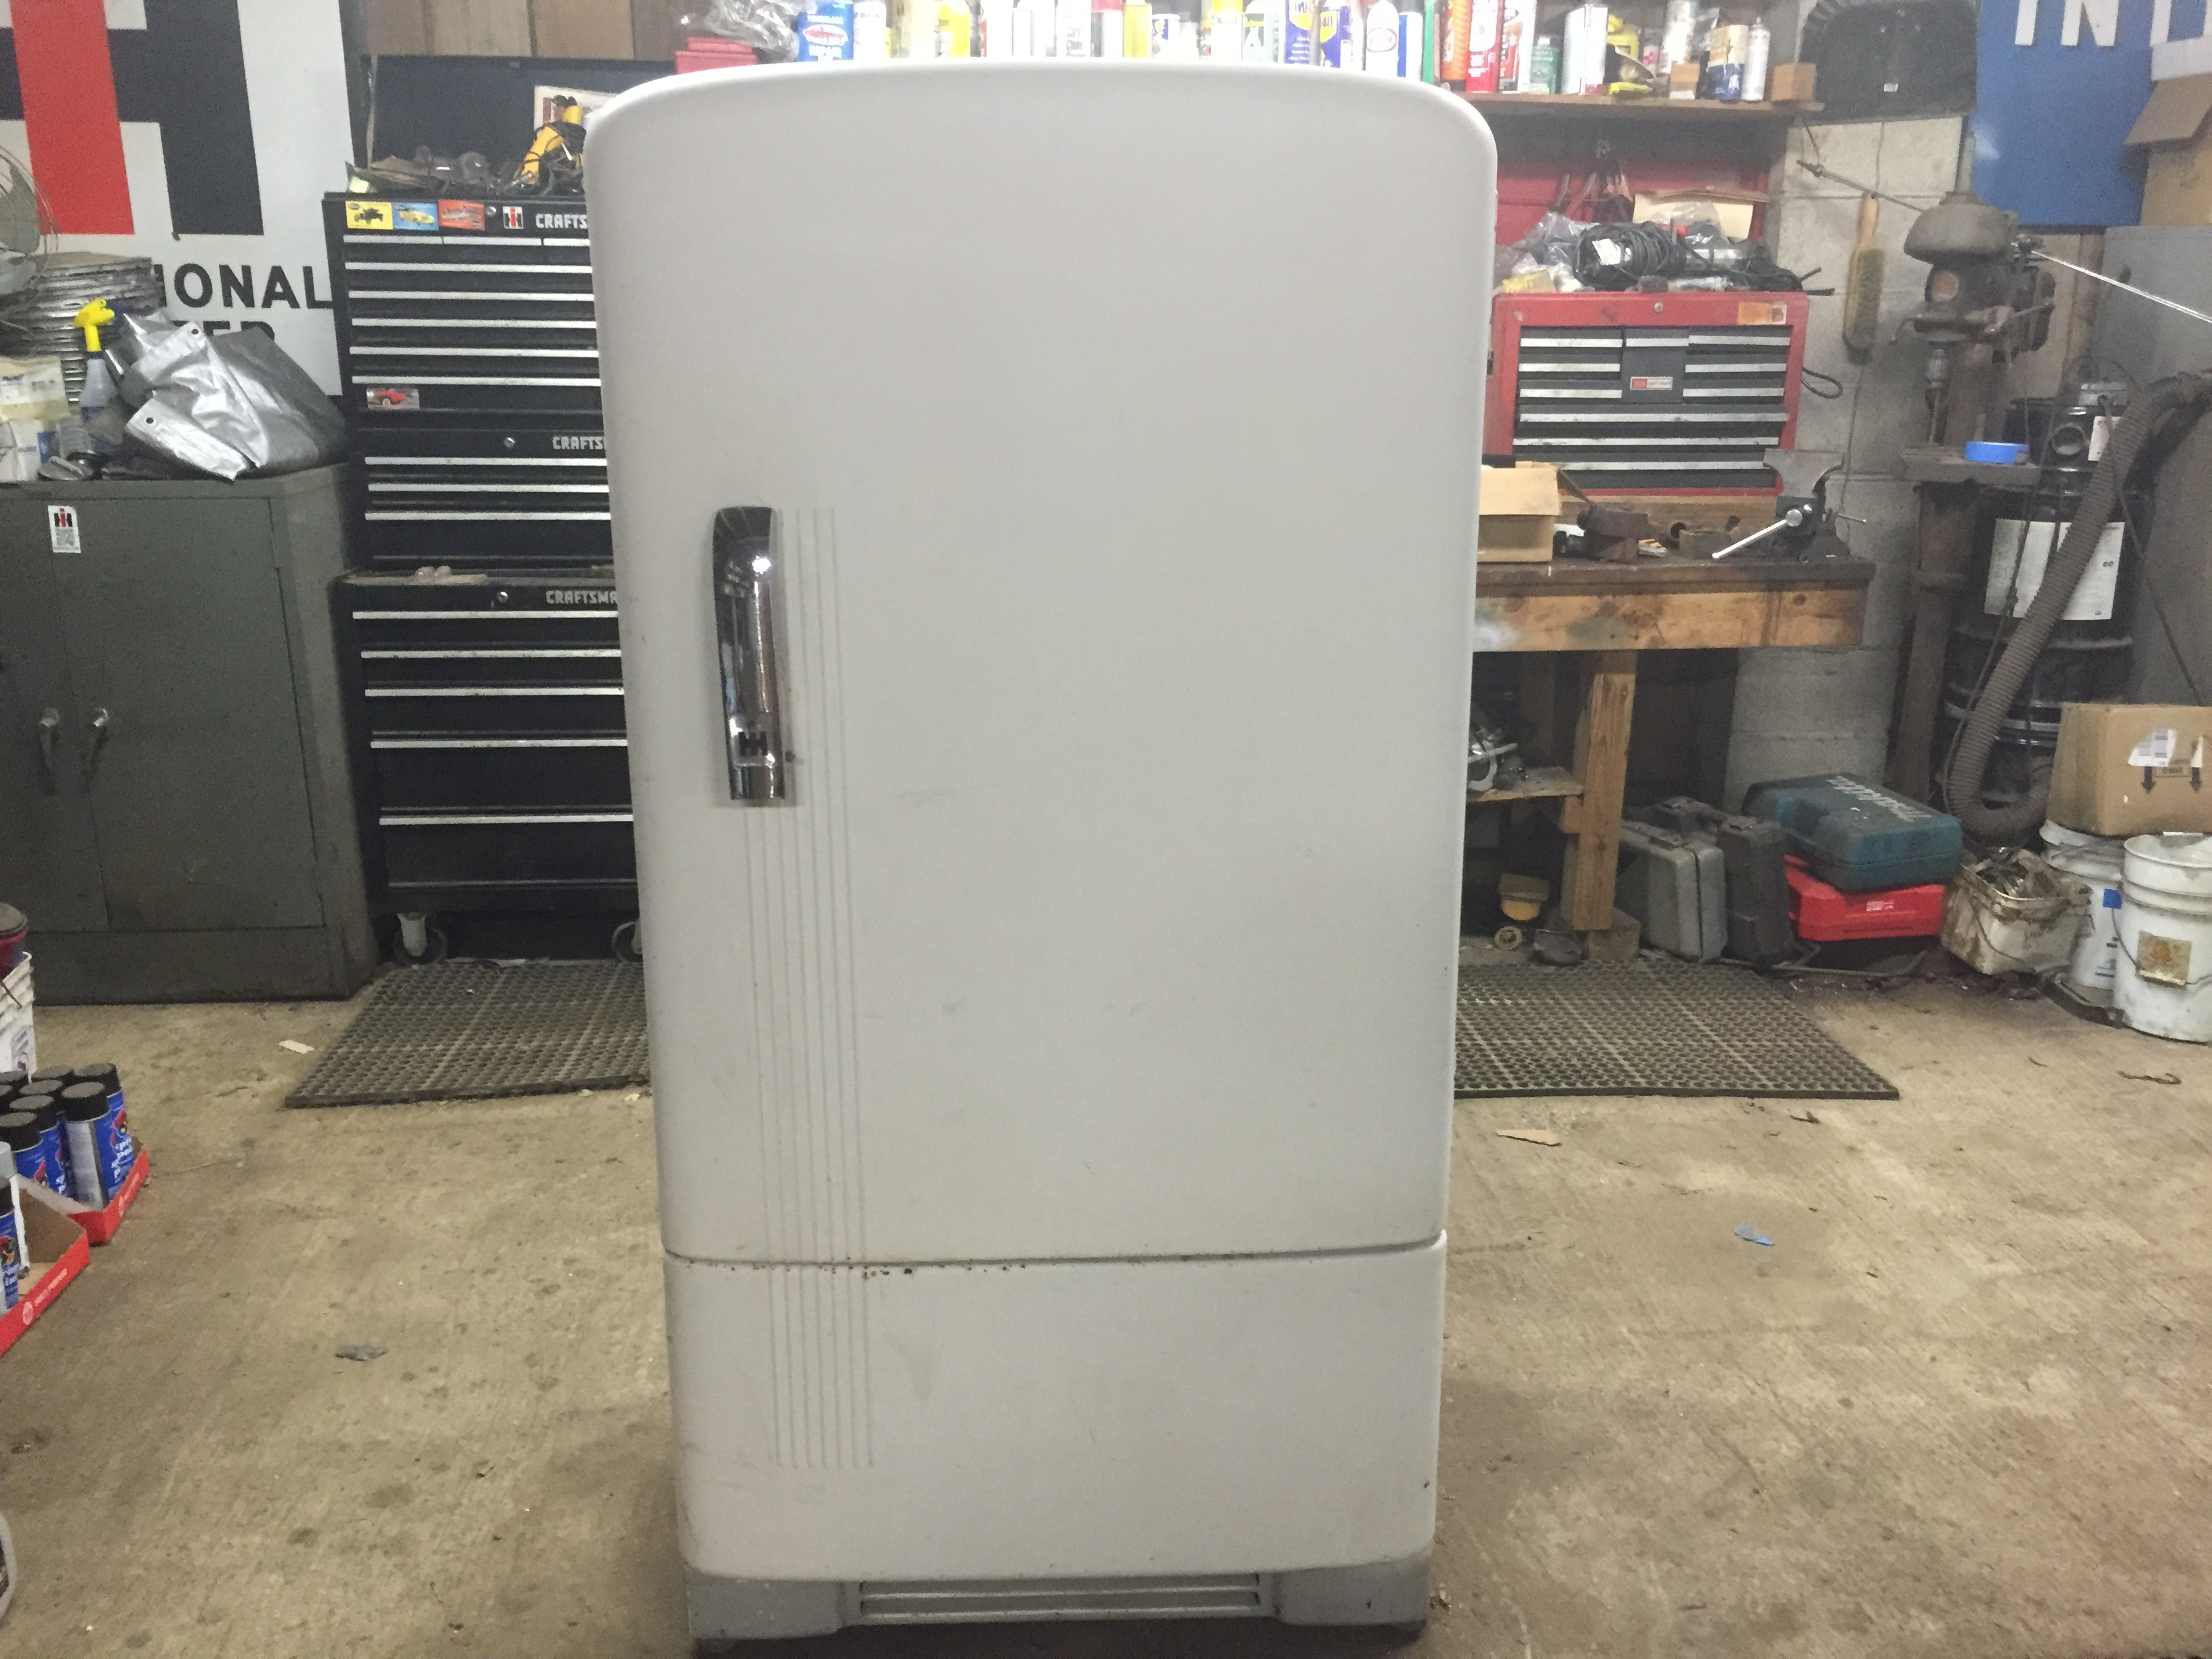 International Harvester Refrigerator : International harvester refrigerator still works